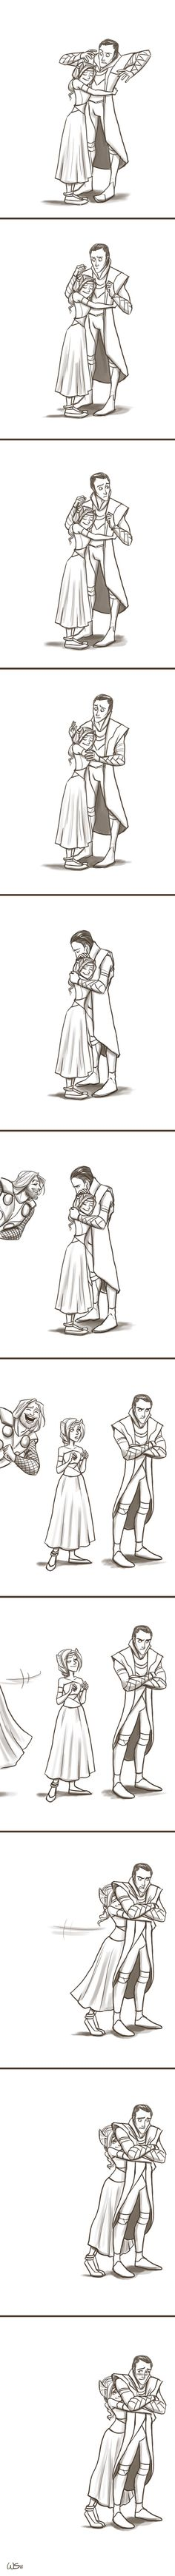 Loki and Sigyn by Wendy Doodles on deviantart. I can't handle the cuteness of this pair. Especially drawn this way <3